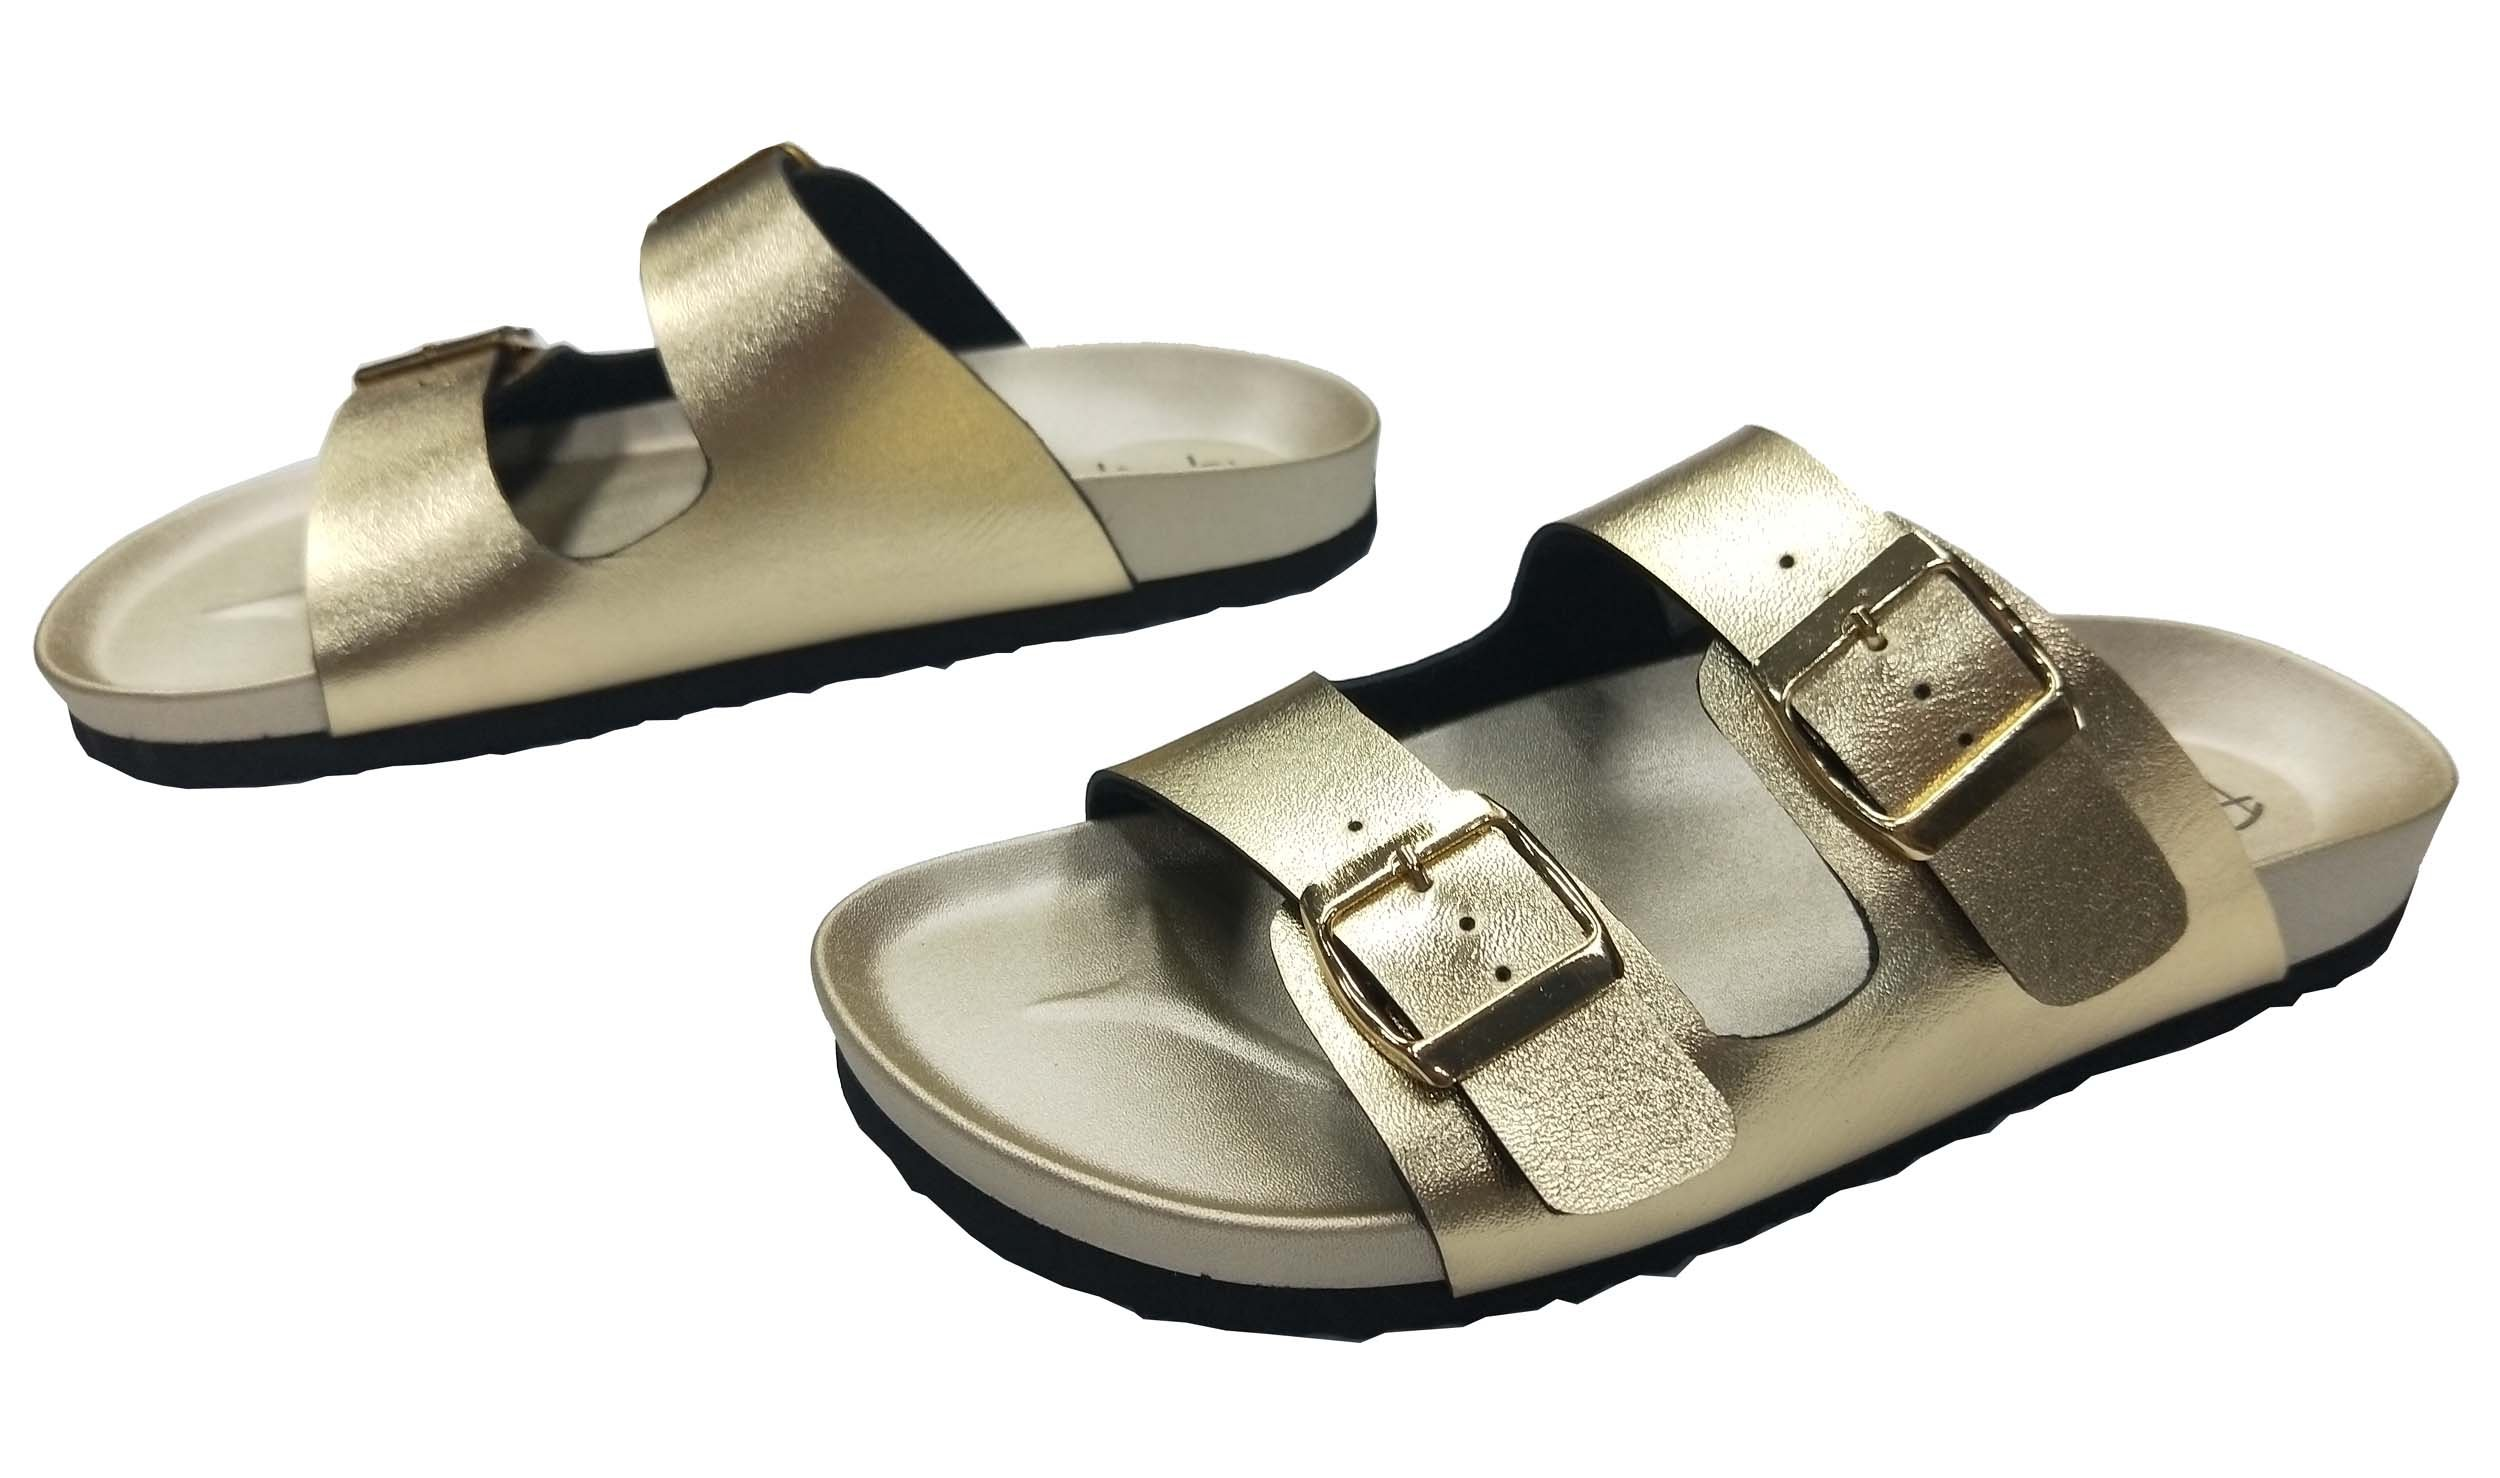 Pepstep Buckle Strap Sandals for Women Super Lightweight and Comfortable Golden/Black Womens Footbed Slide Sandals(9, Golden) by Pepstep (Image #7)